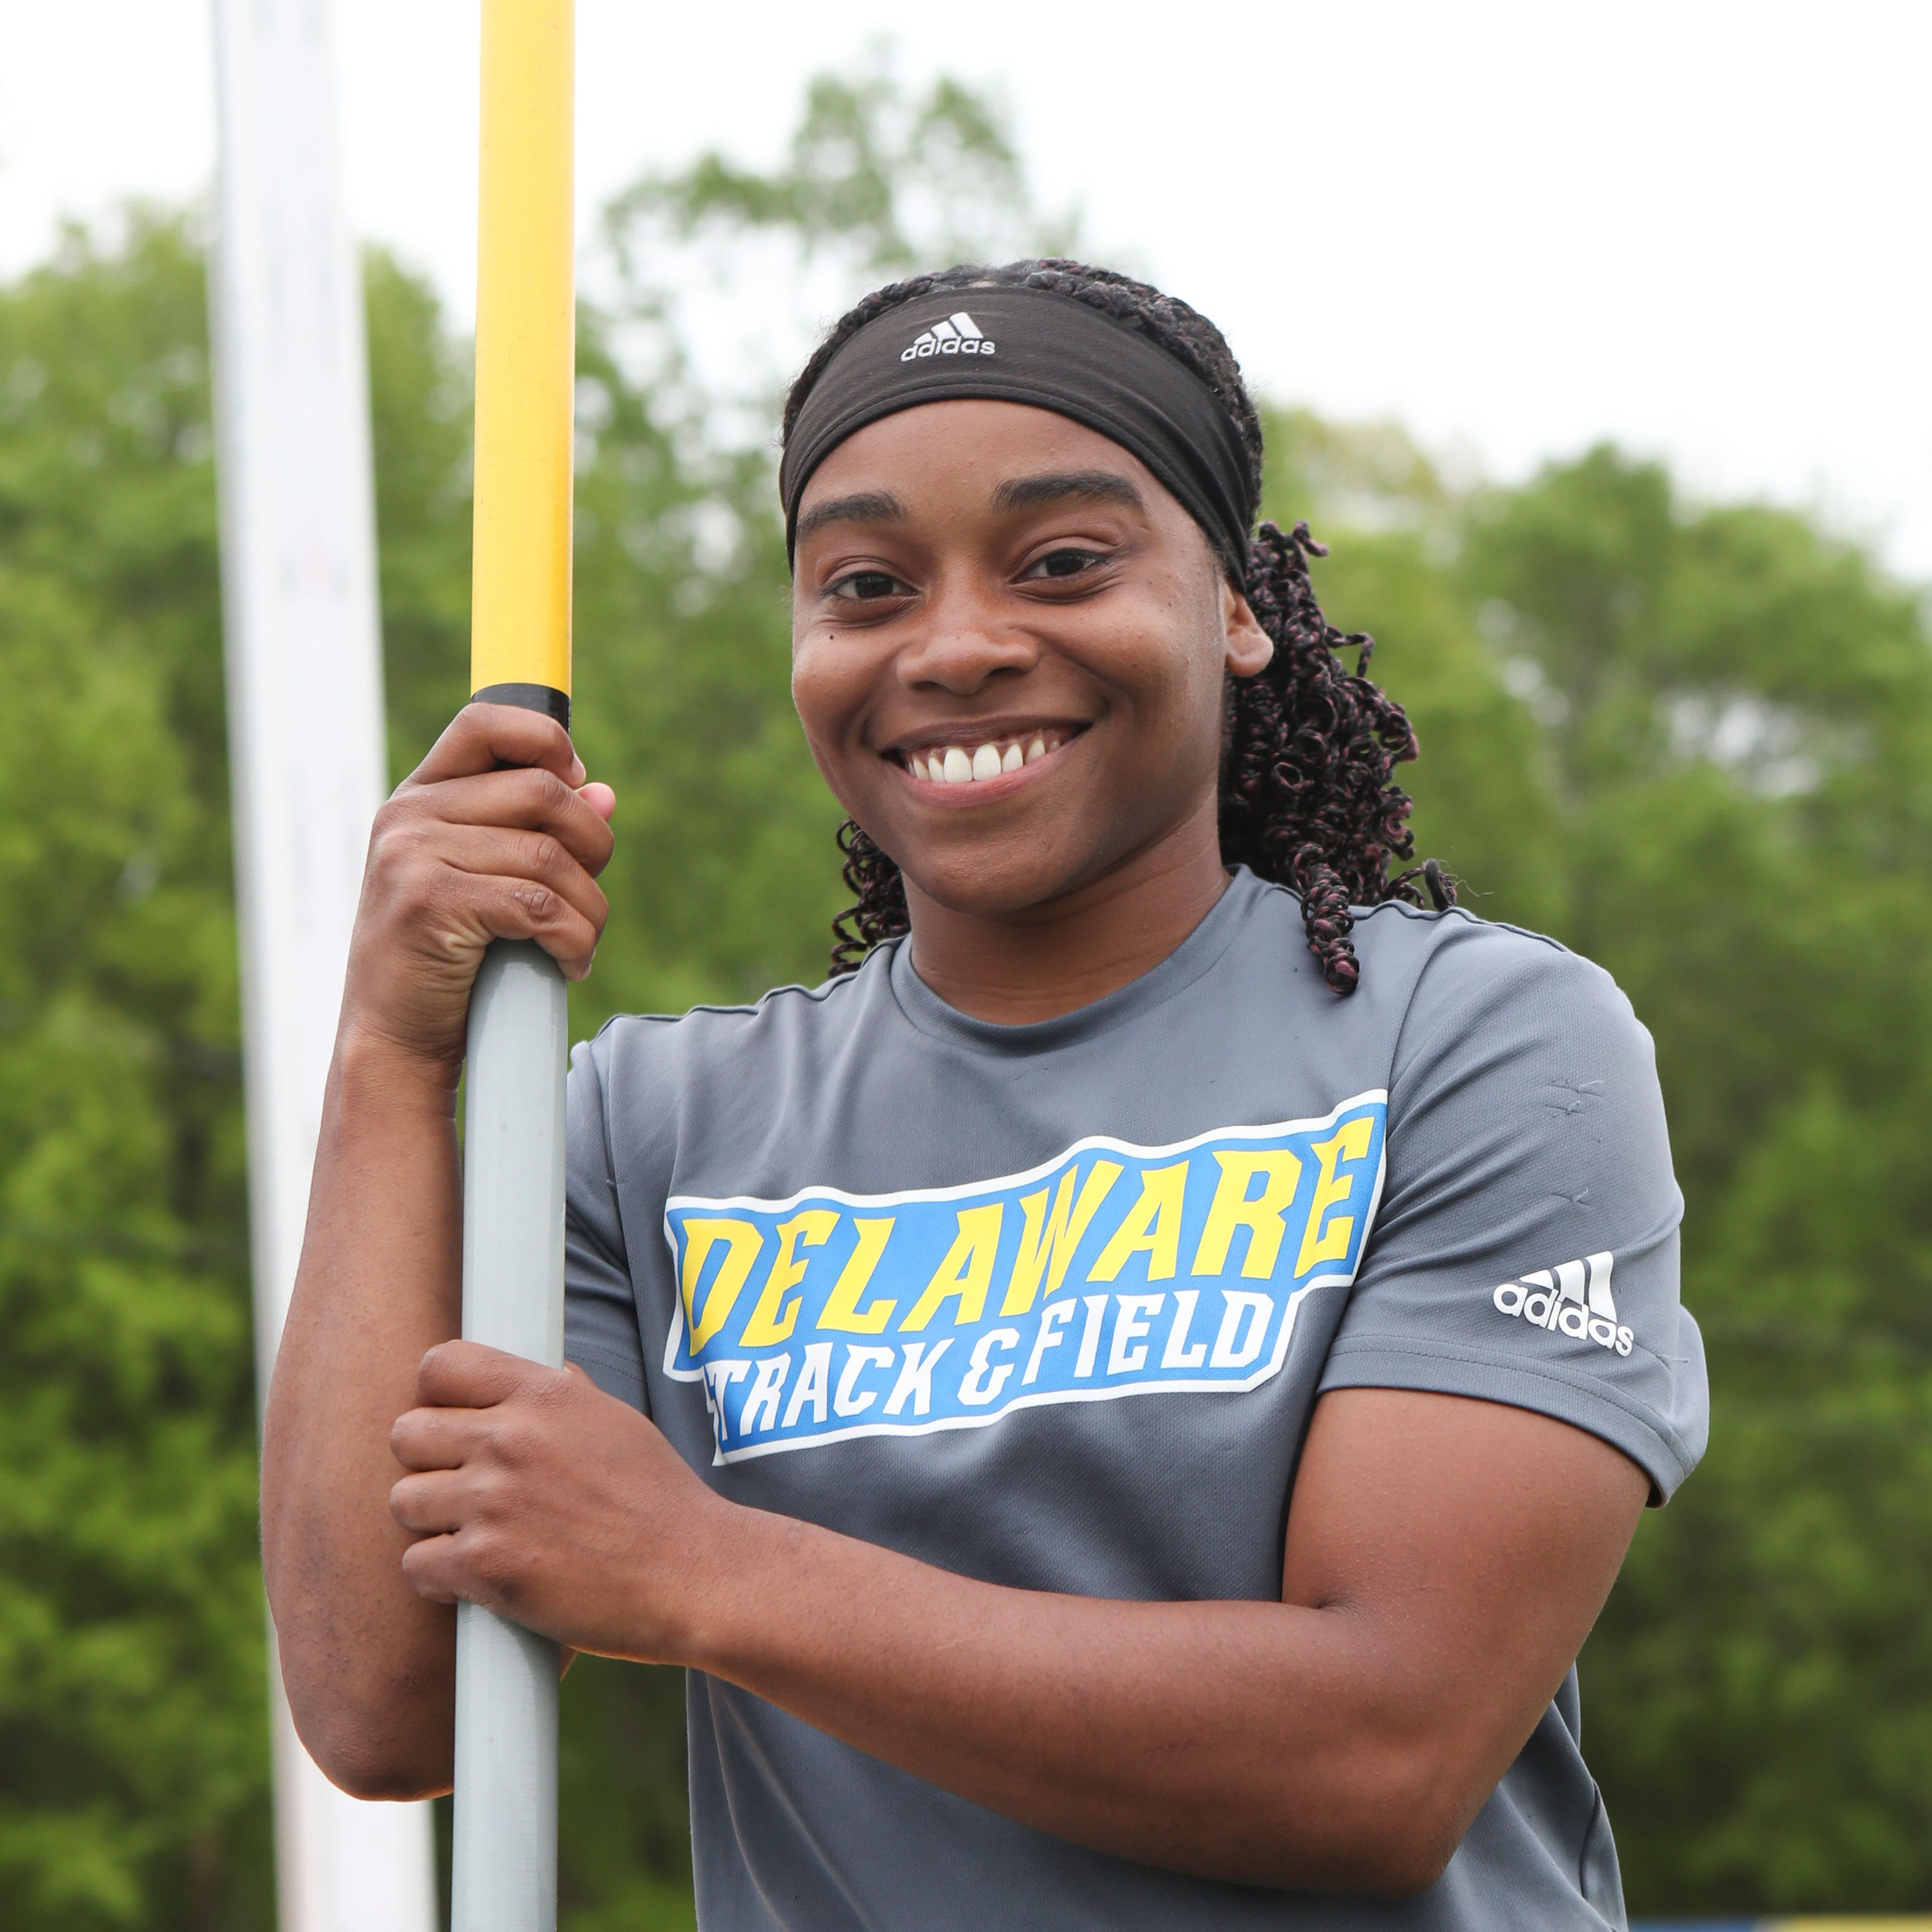 Driven by inspirational hero, Delaware pole vault star Bailey soars like no other